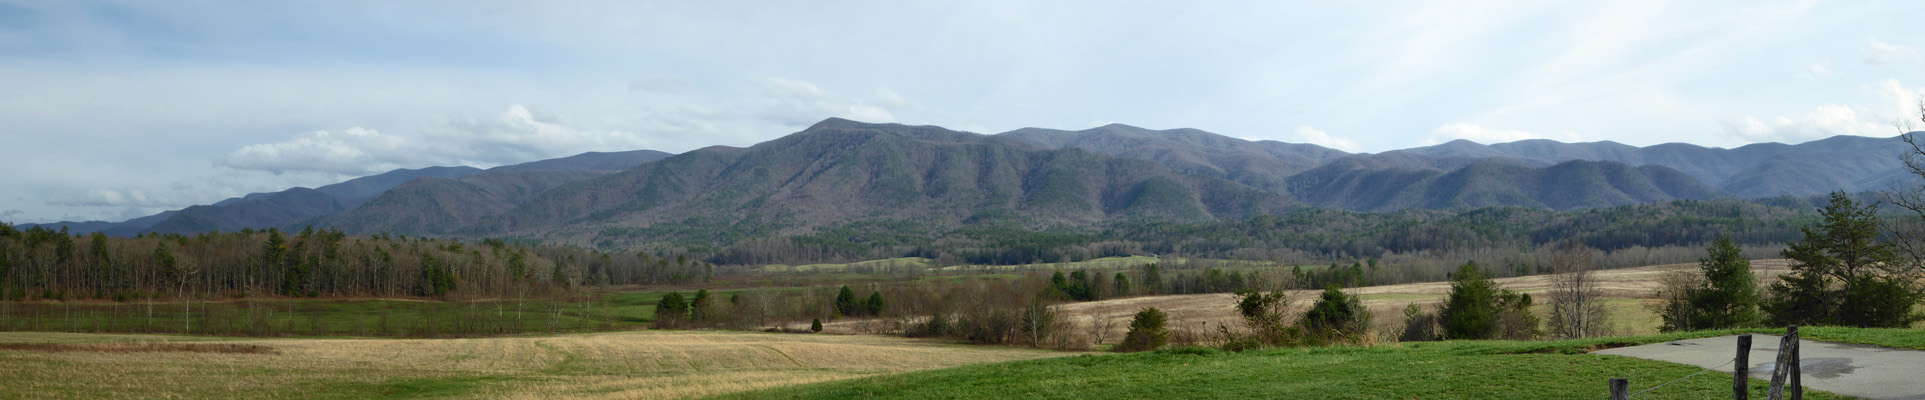 Great Smoky Mts Cades Cove